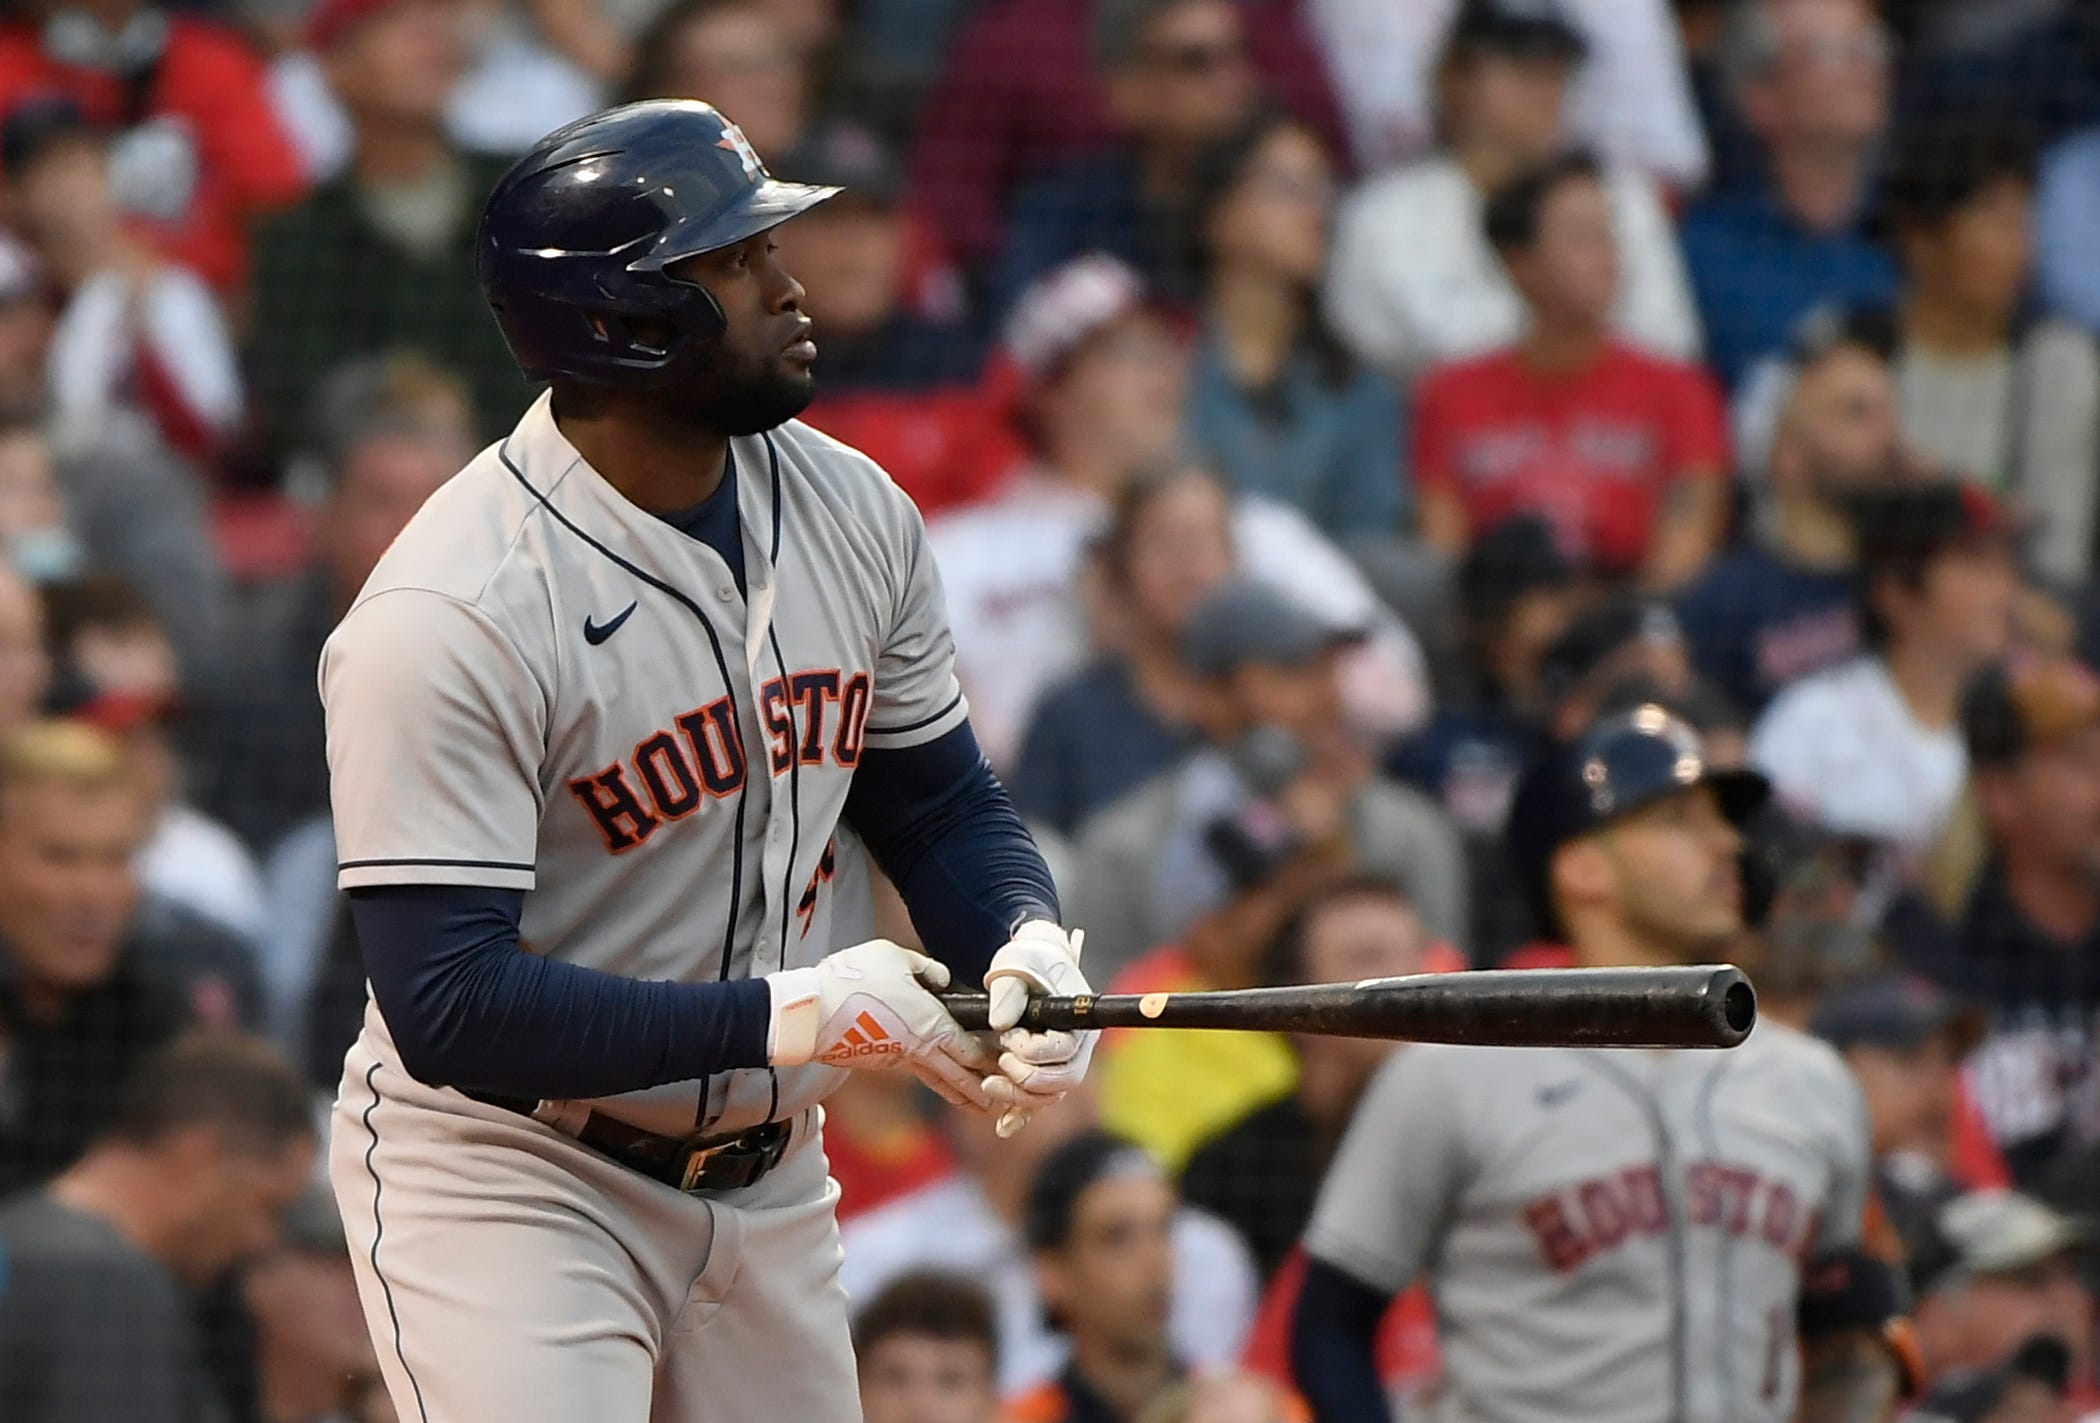 Astros silence Red Sox in Game 5 of ALCS, one win from punching World Series ticket